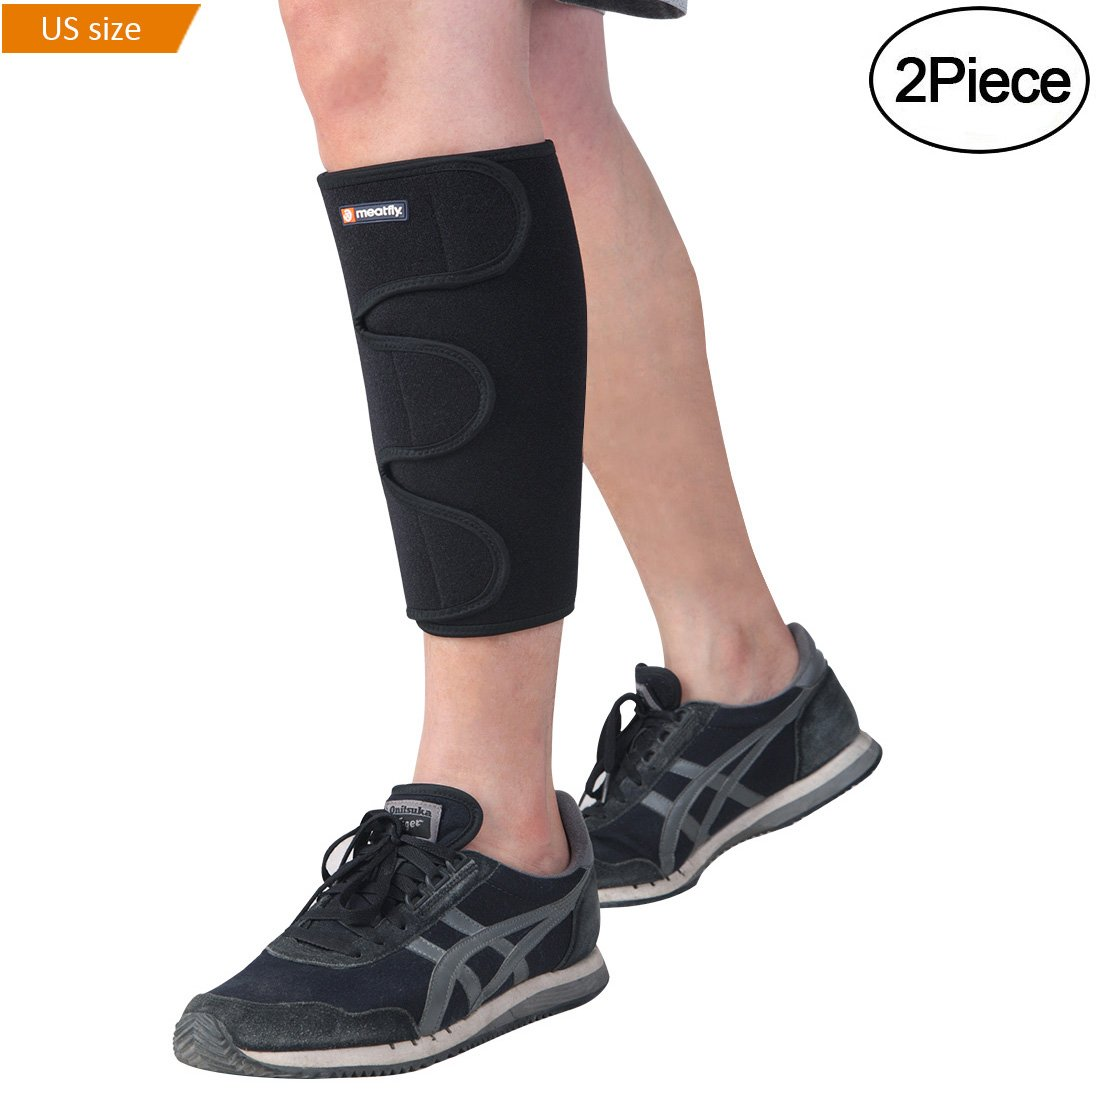 MEATFLY. Shin Splint Support Calf Brace Compression Sleeve Adjustable Wrap for Leg Pain Relief.(Black)